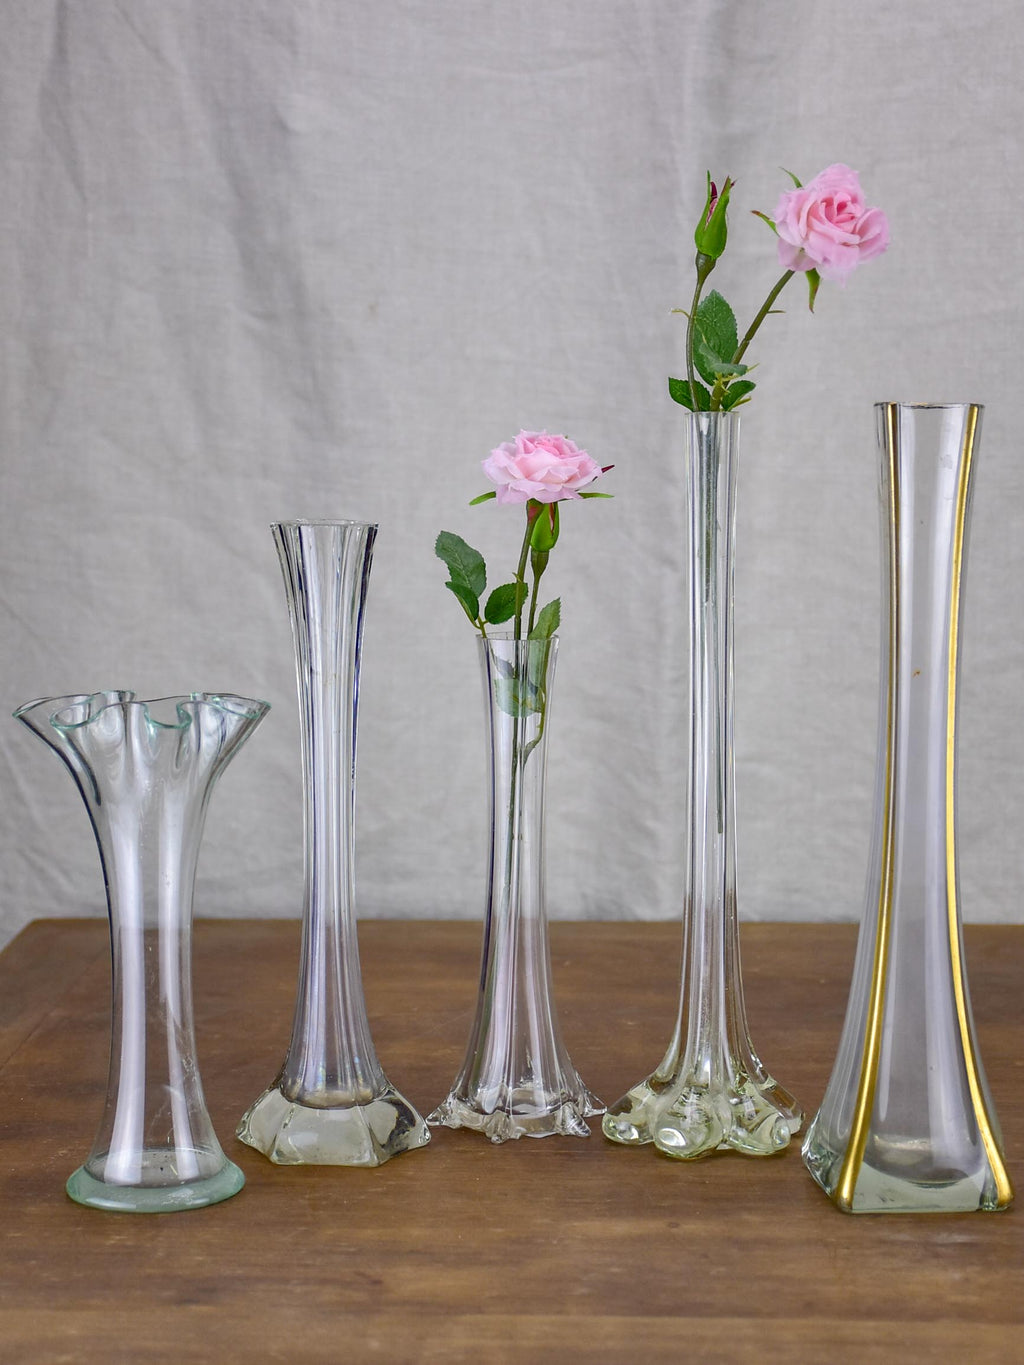 Collection of five antique glass vases